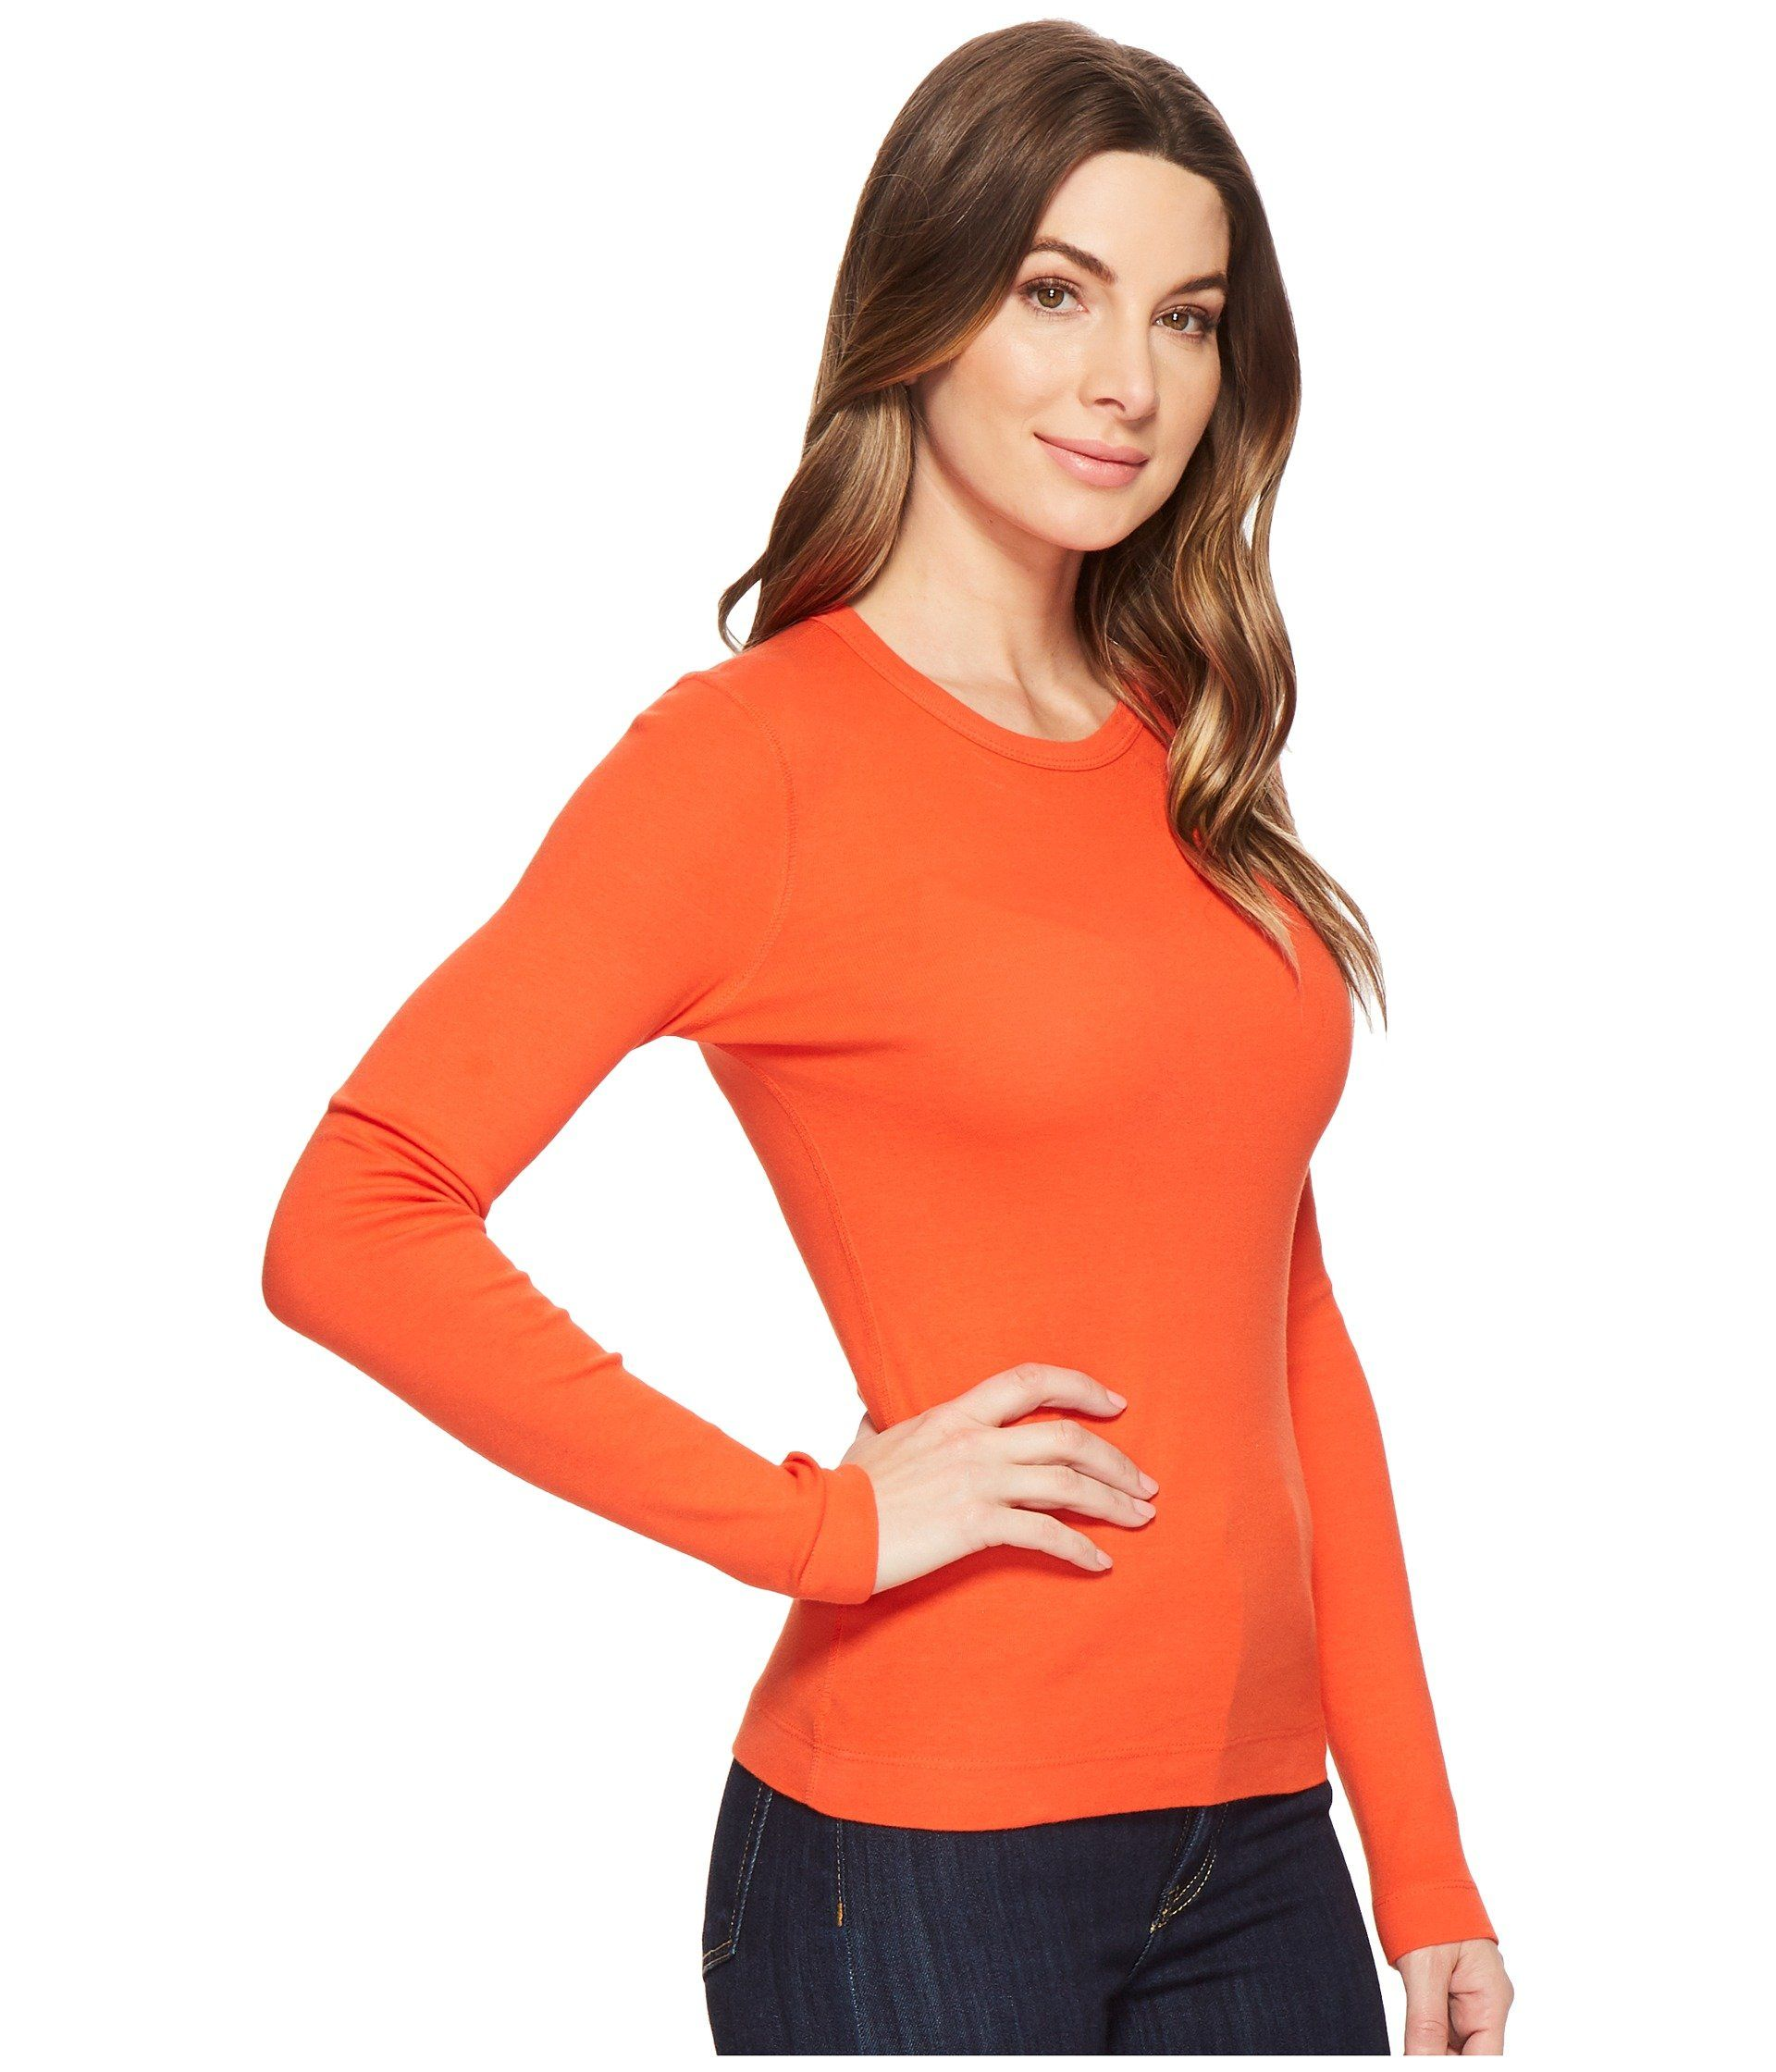 Cora Skinner Zappos 2018 Long sleeve, Clothes for